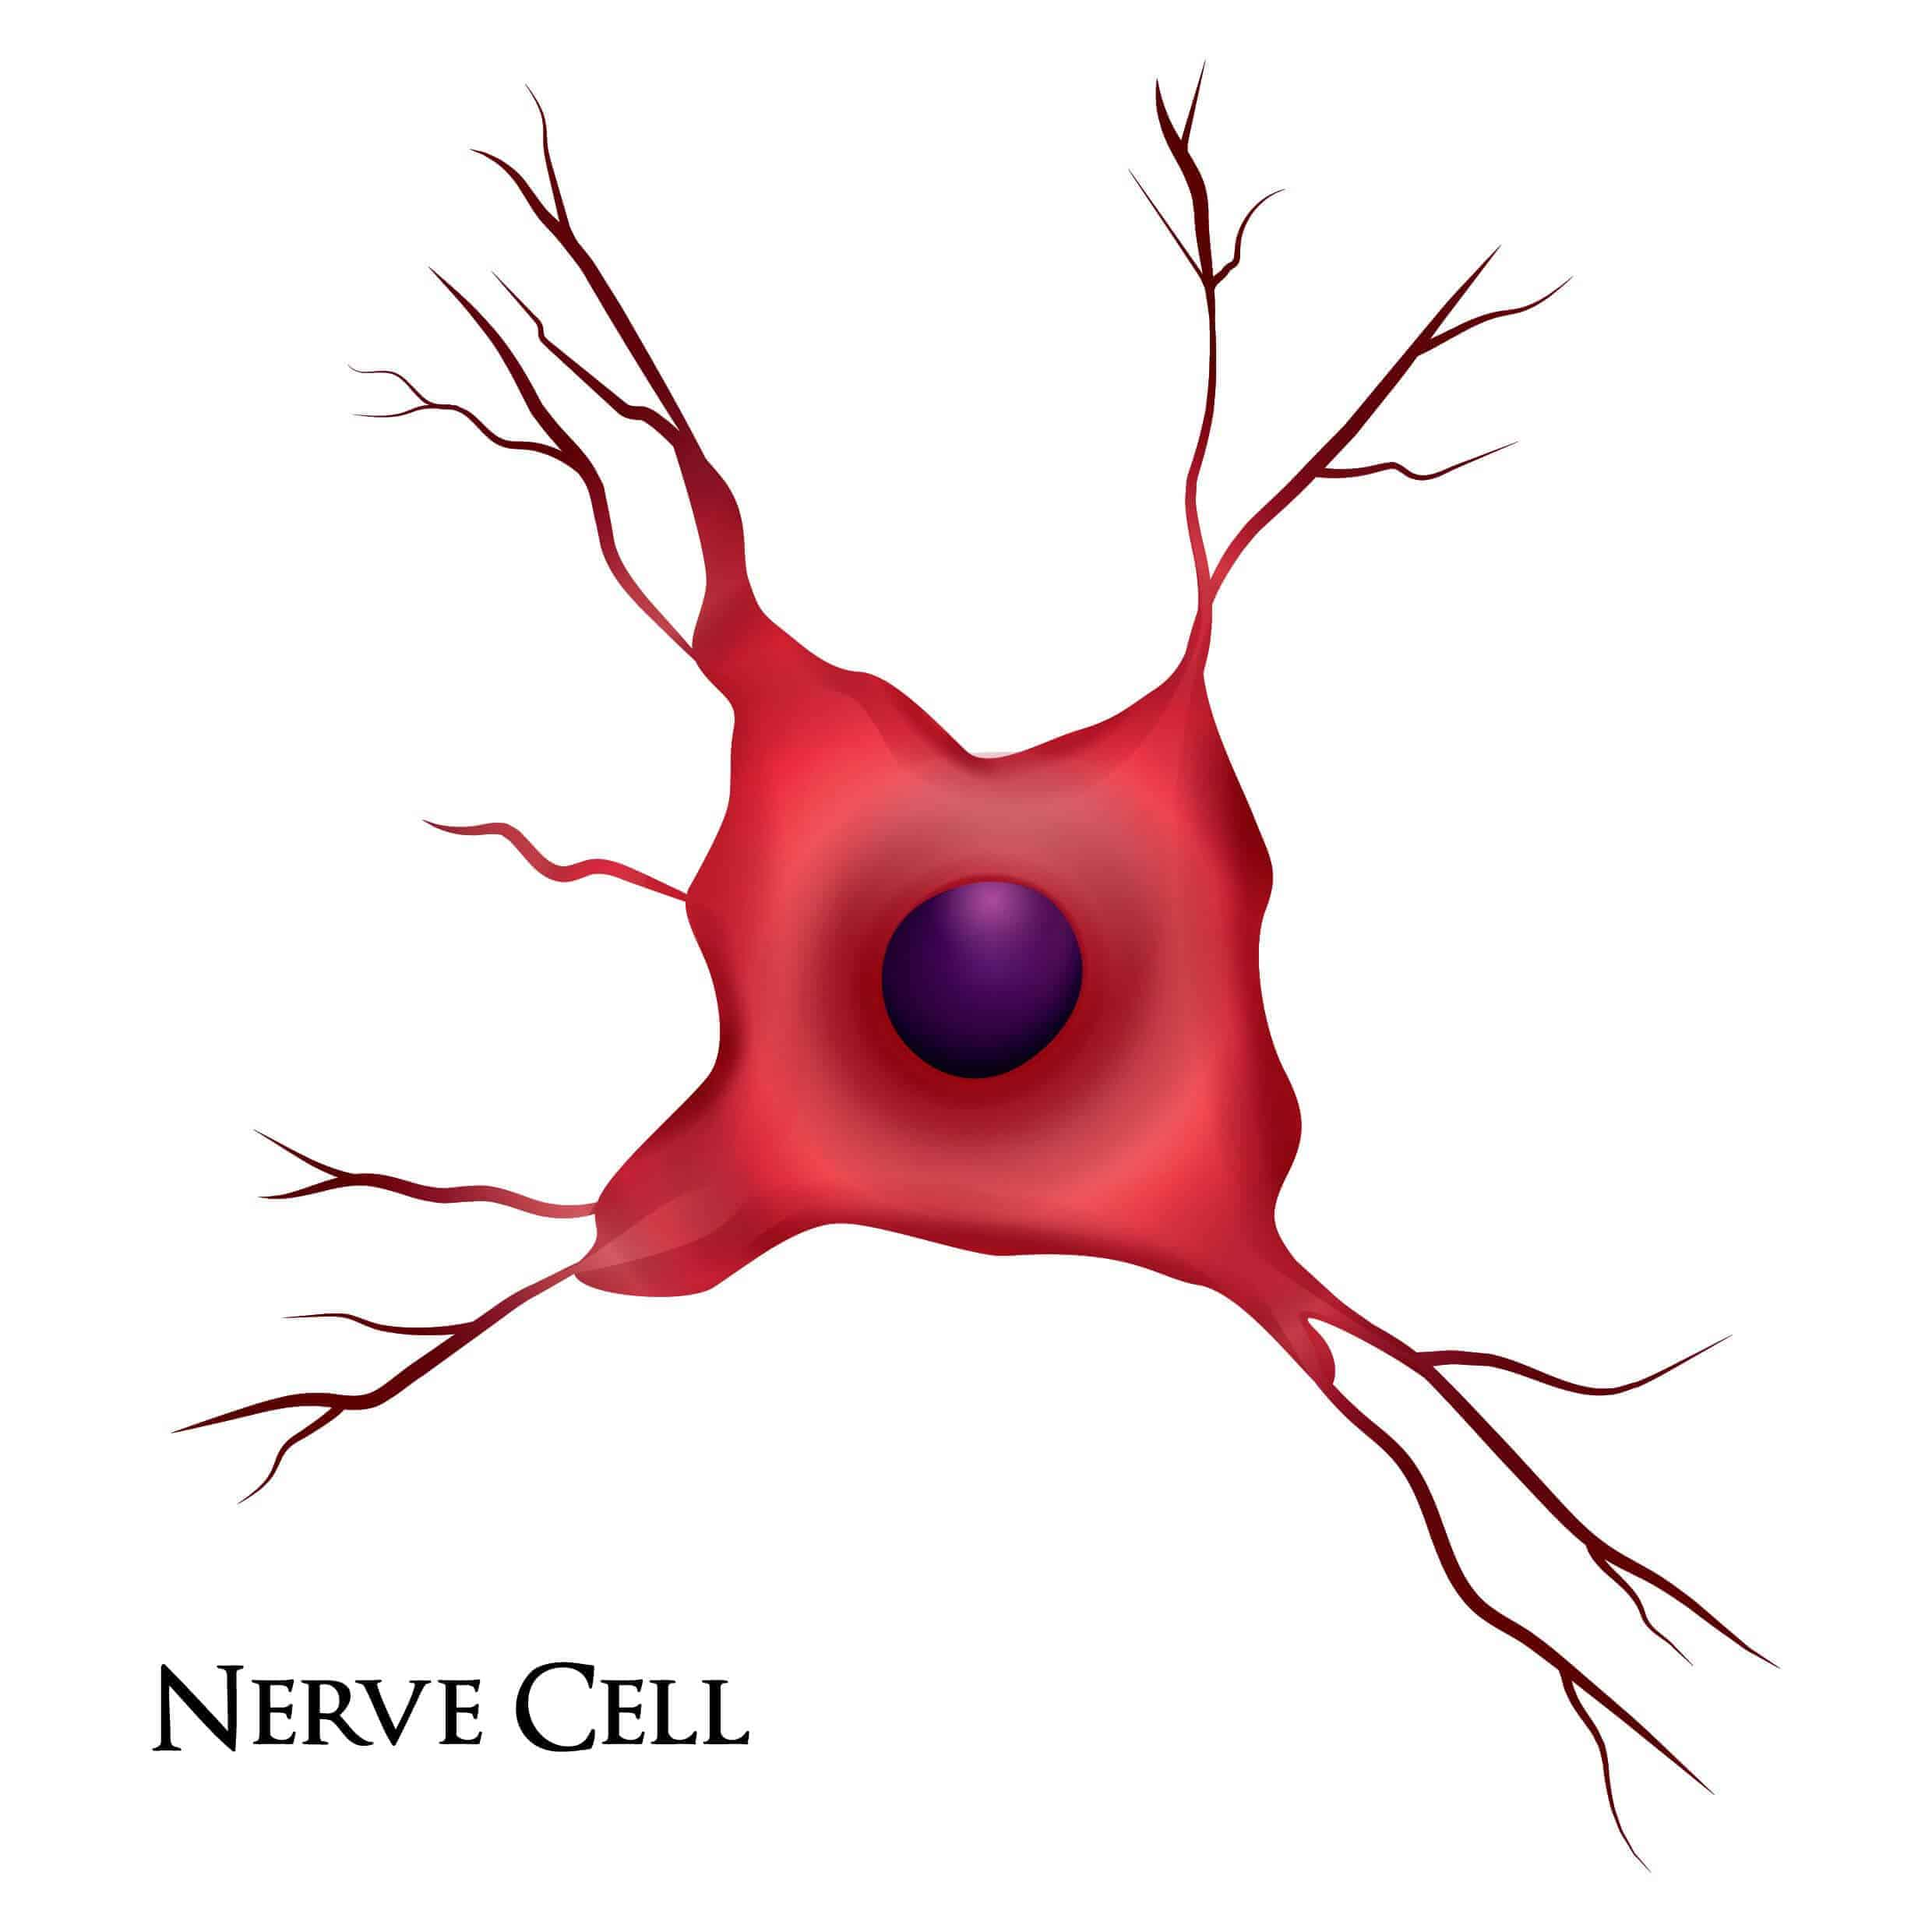 An image of a nerve cell to get help for neuropathy relief